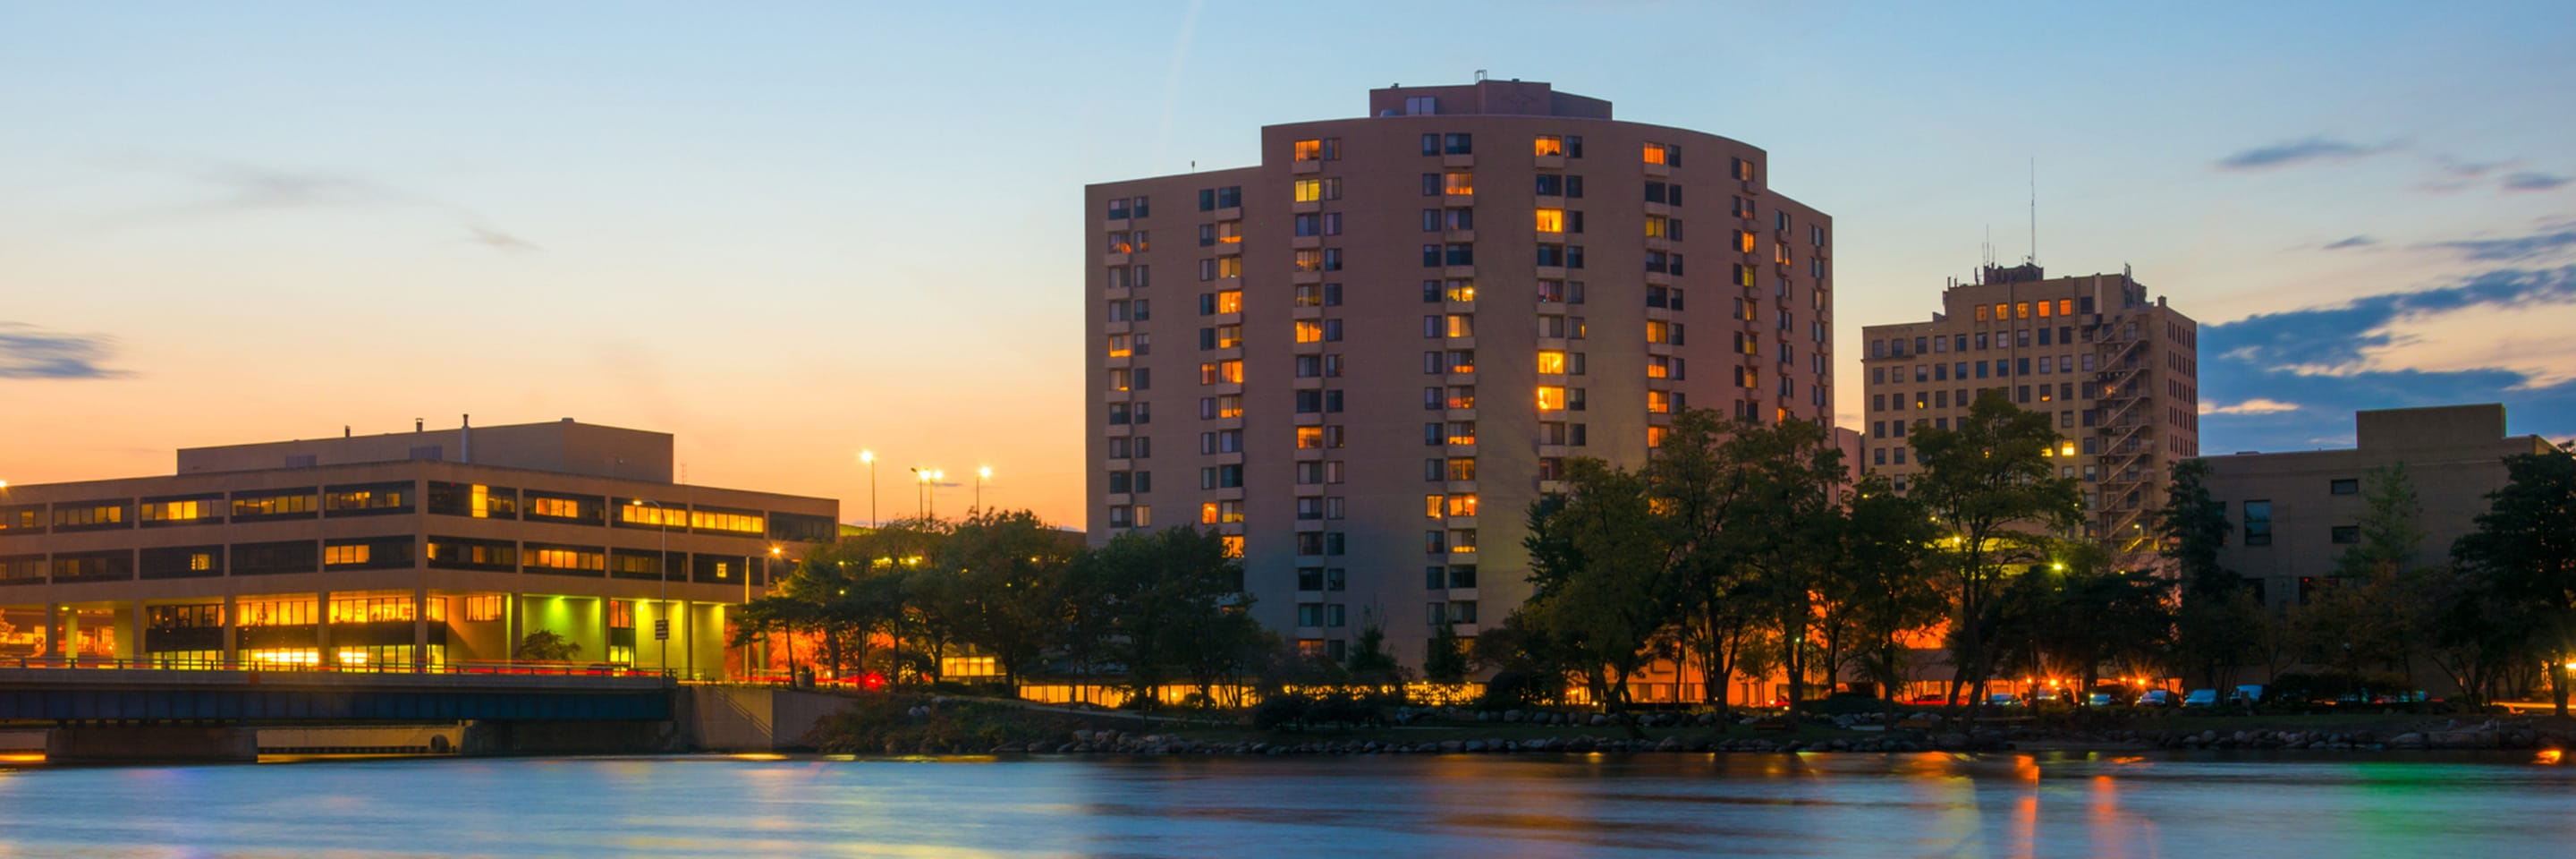 Hotels in Rockford